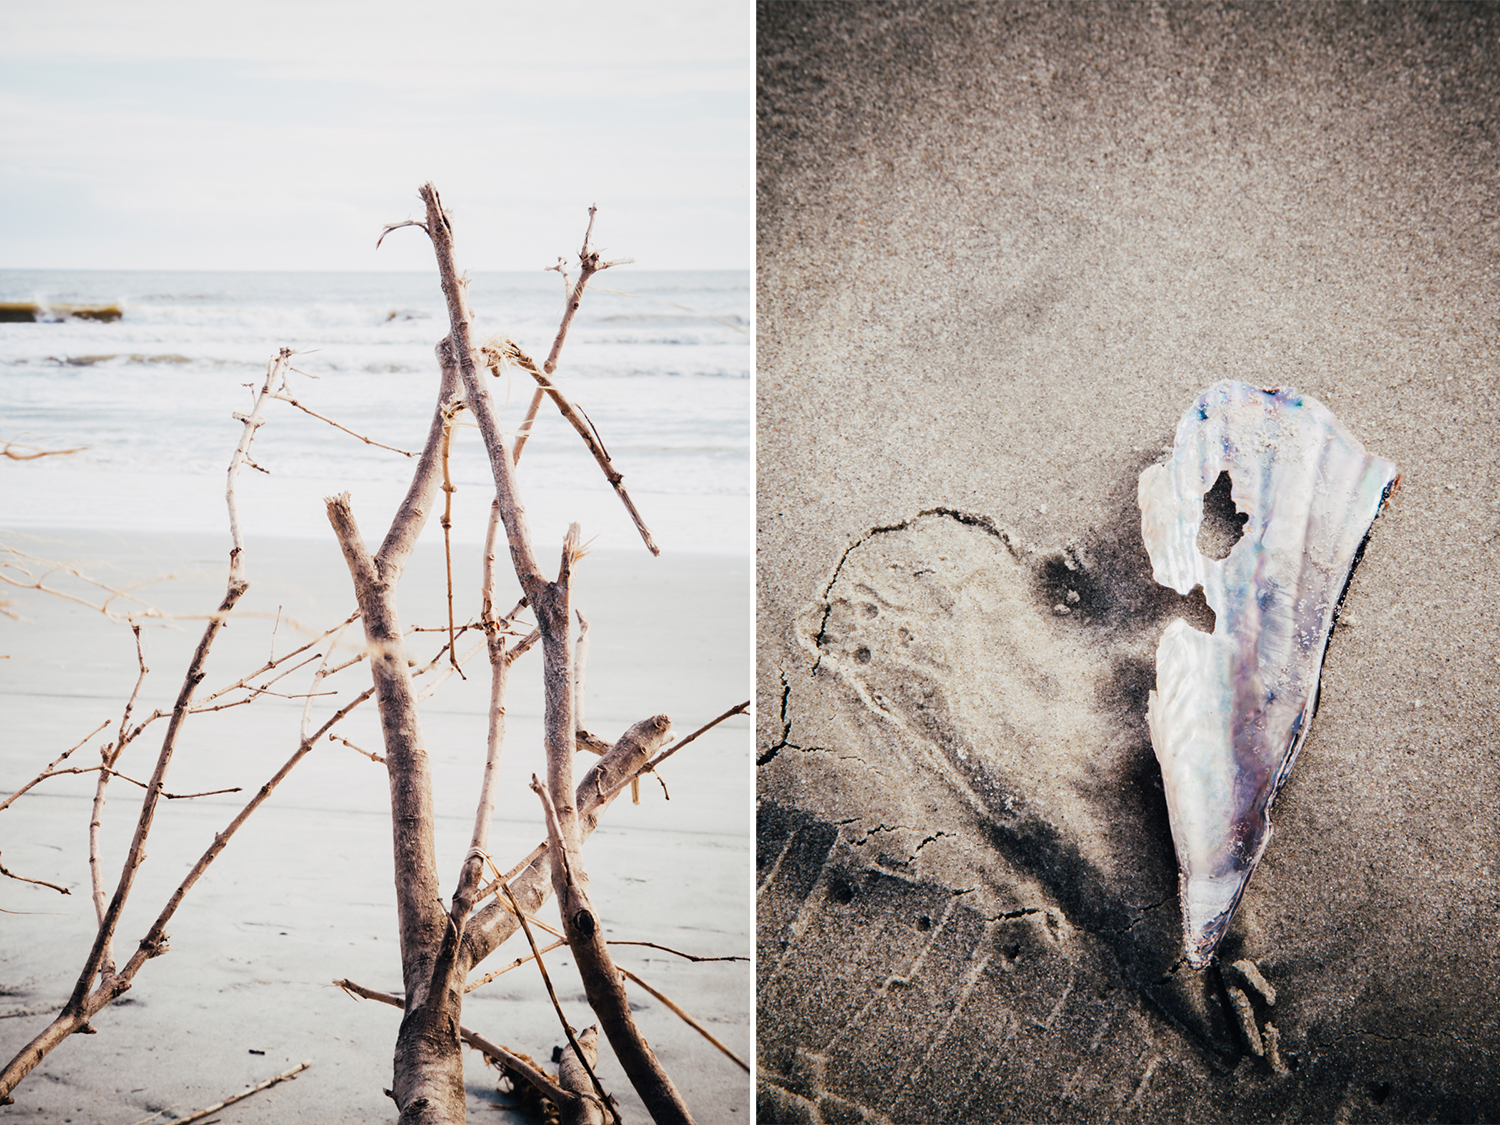 katharine-friedgen-photography-beach-13 copy